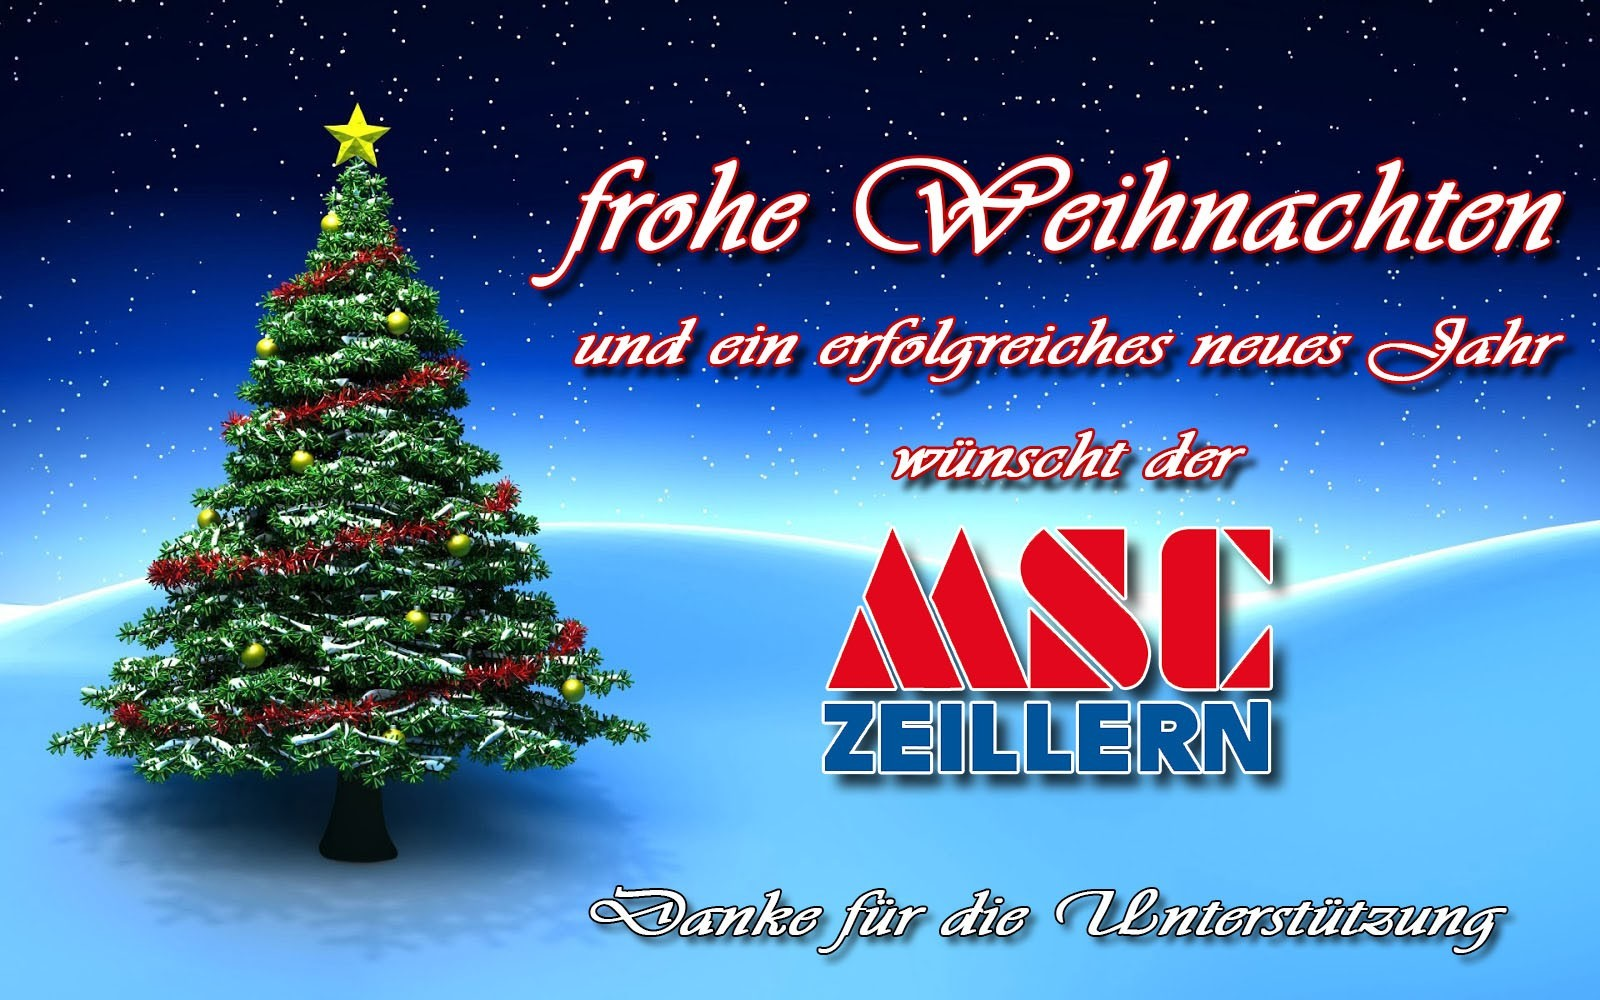 MSC_Christbaum_2016.jpg